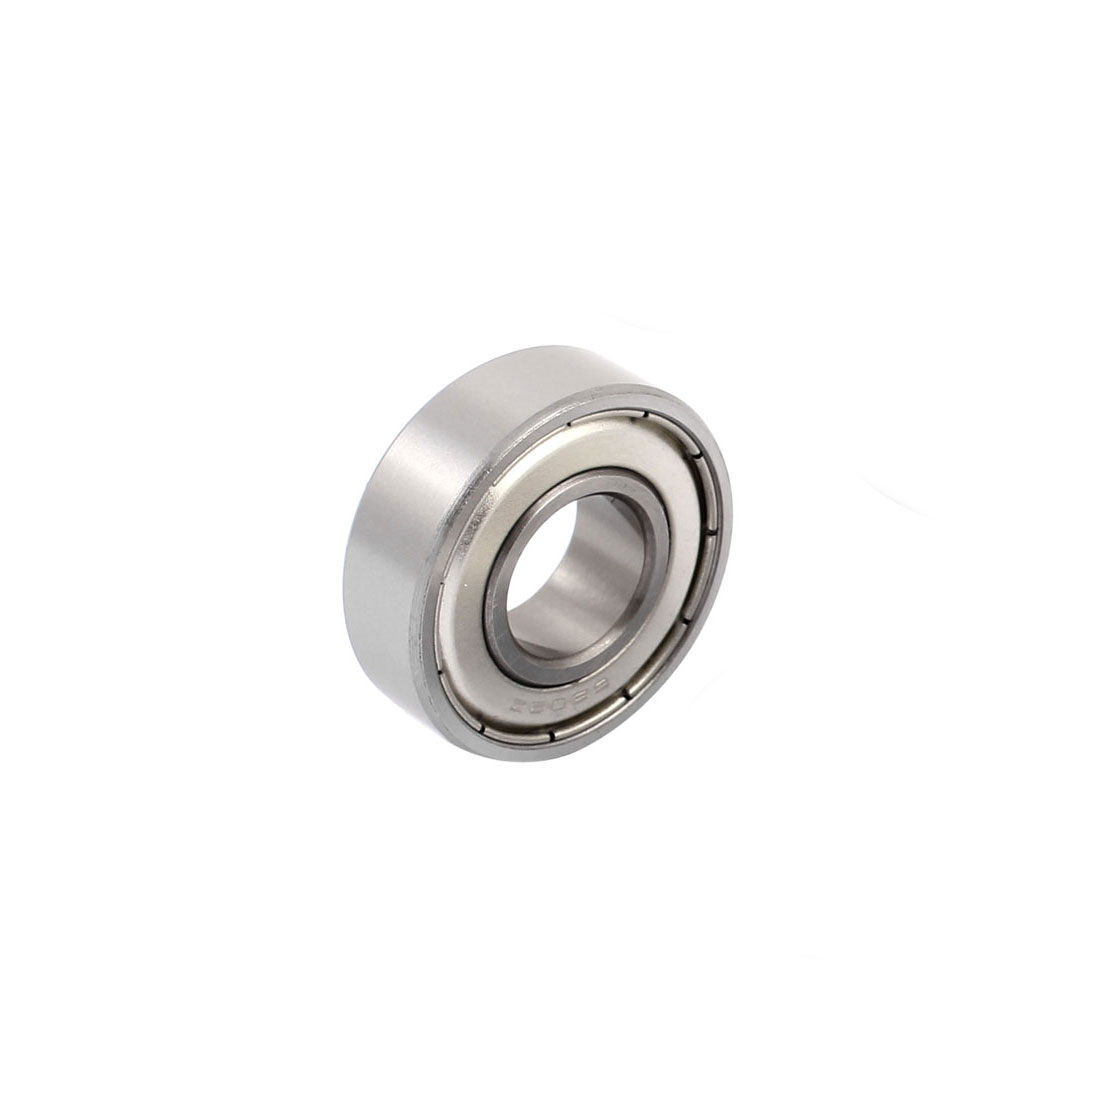 Metal Shielded Sealed Low Speed Deep Groove Ball Bearing 15mmx35mmx11mm